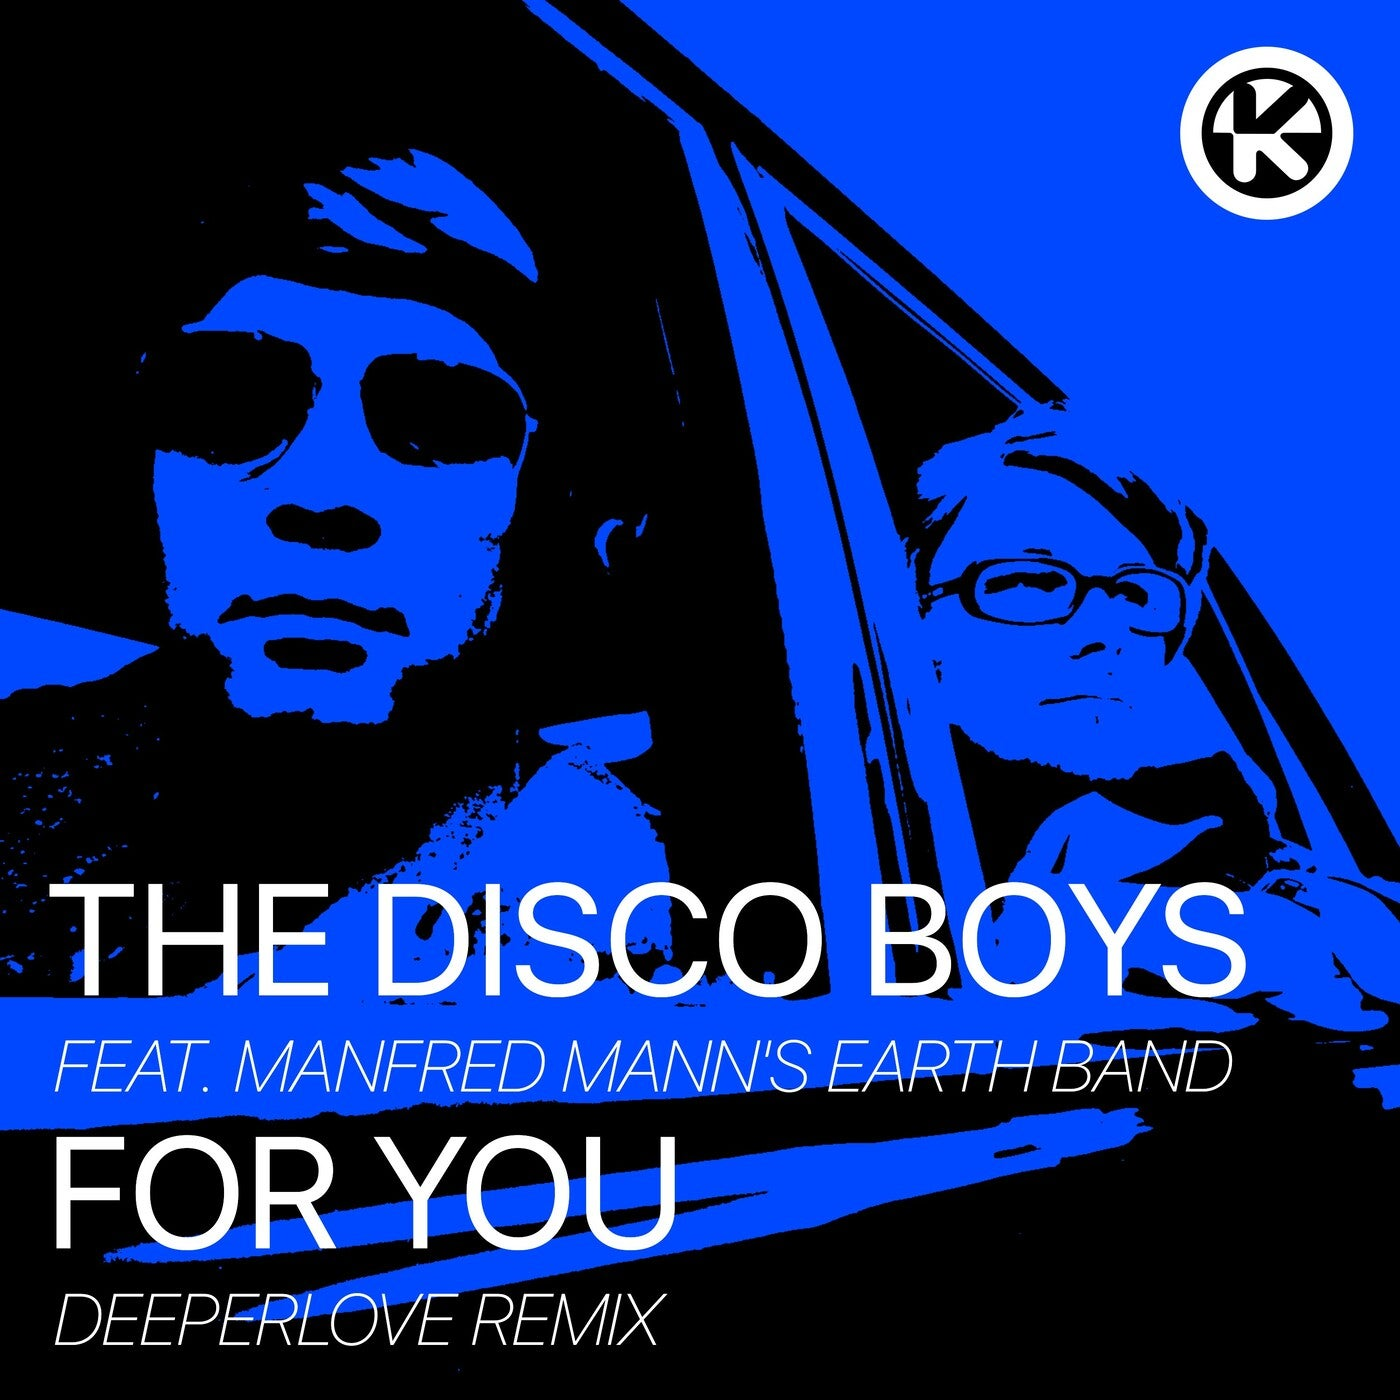 For You feat. Manfred Mann's Earth Band (Deeperlove Extended Remix)